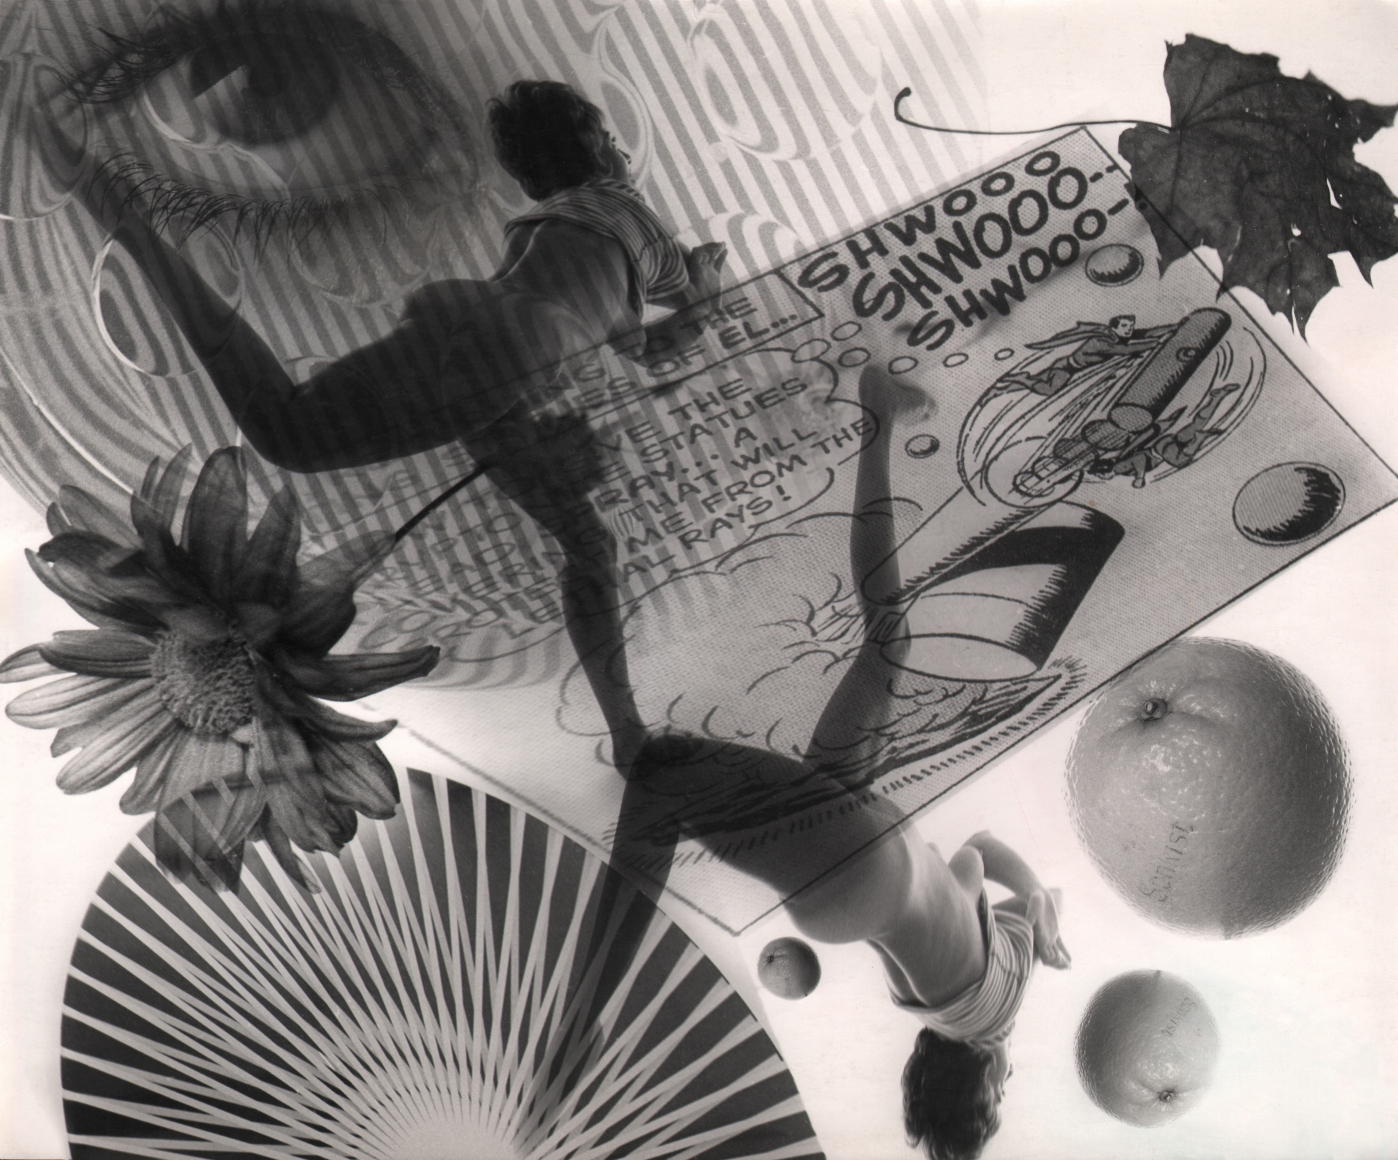 17. David Attie, Untitled Montage, c. 1965. Composite photo featuring two images of a woman in a leaping pose, fruits, flowers and leaves, an eye, and more.